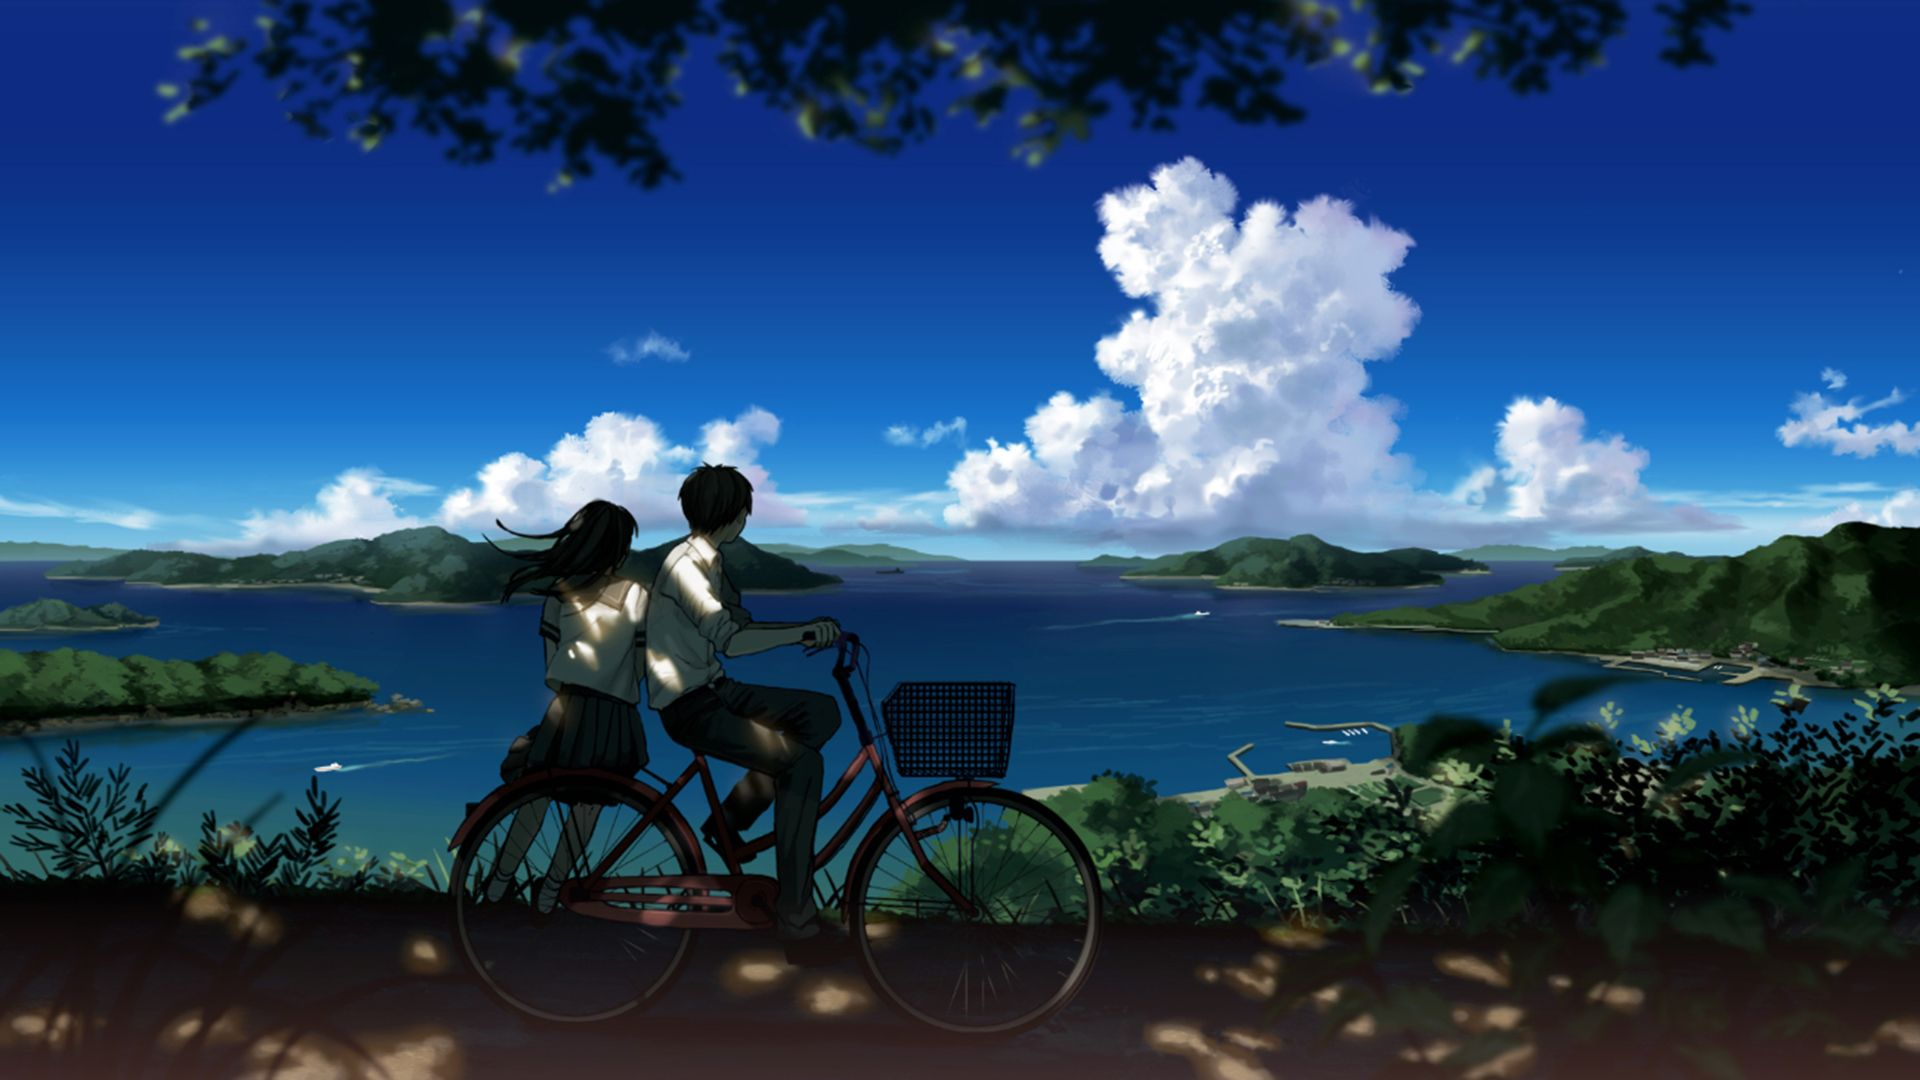 Anime Scenery Wallpaper Phone Sdeerwallpaper